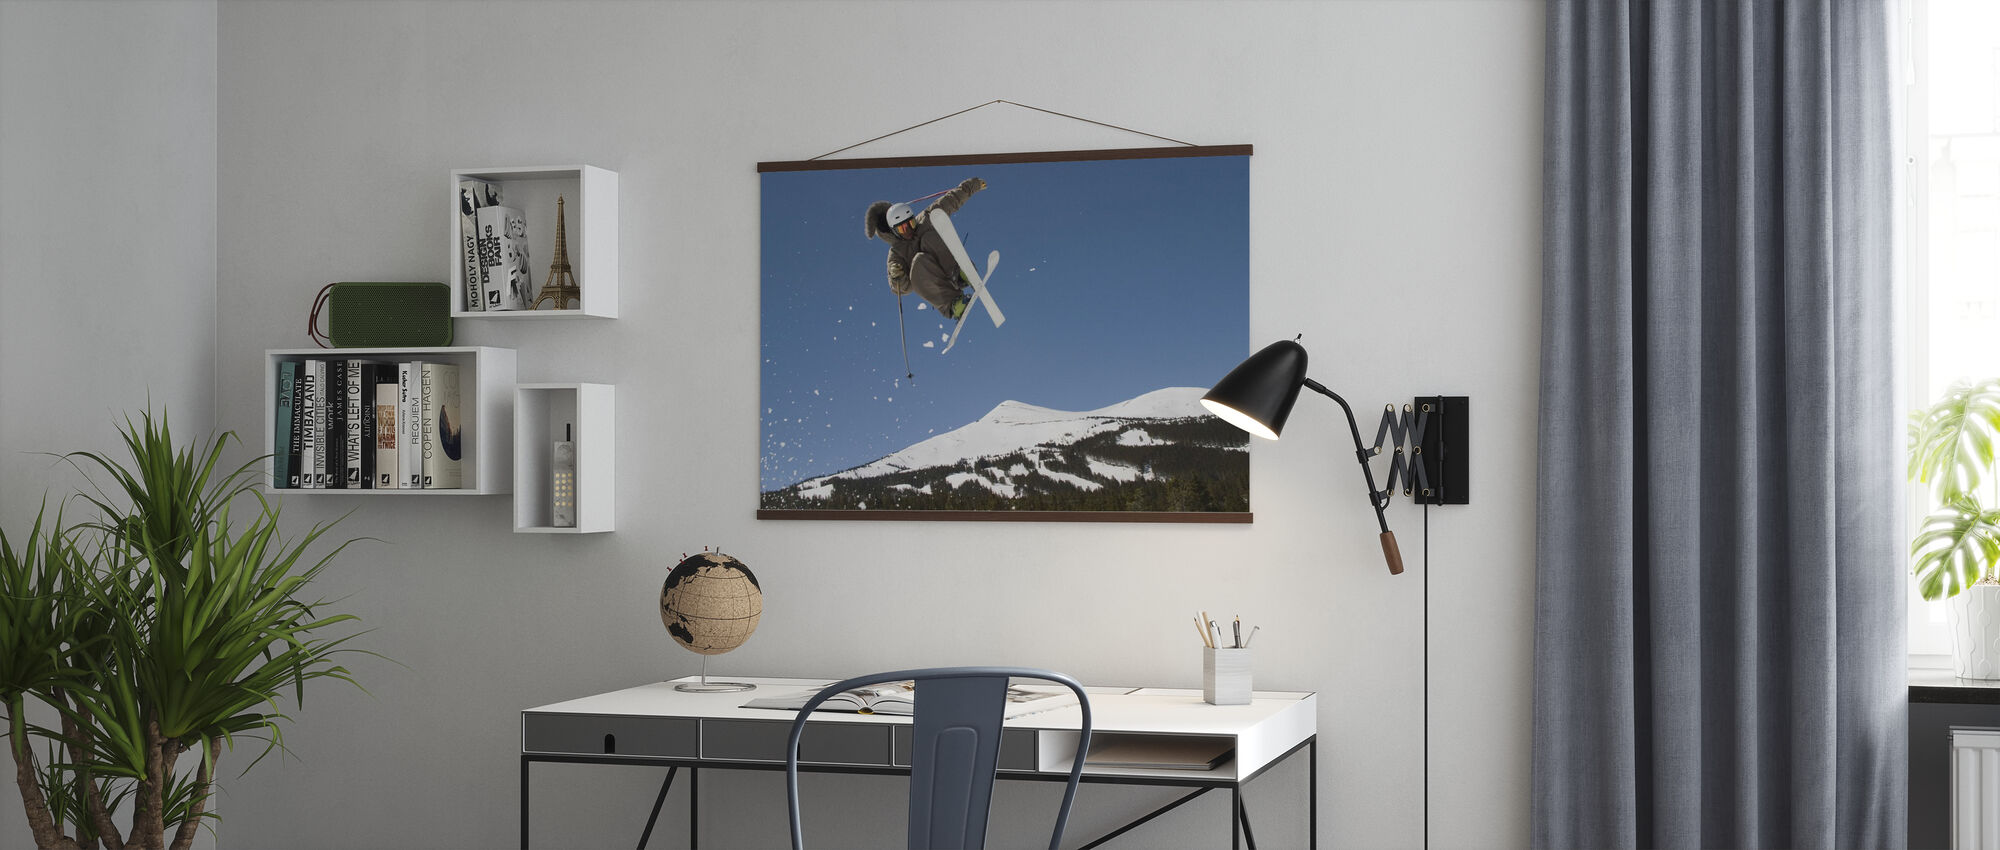 Superpipe Skier - Poster - Office